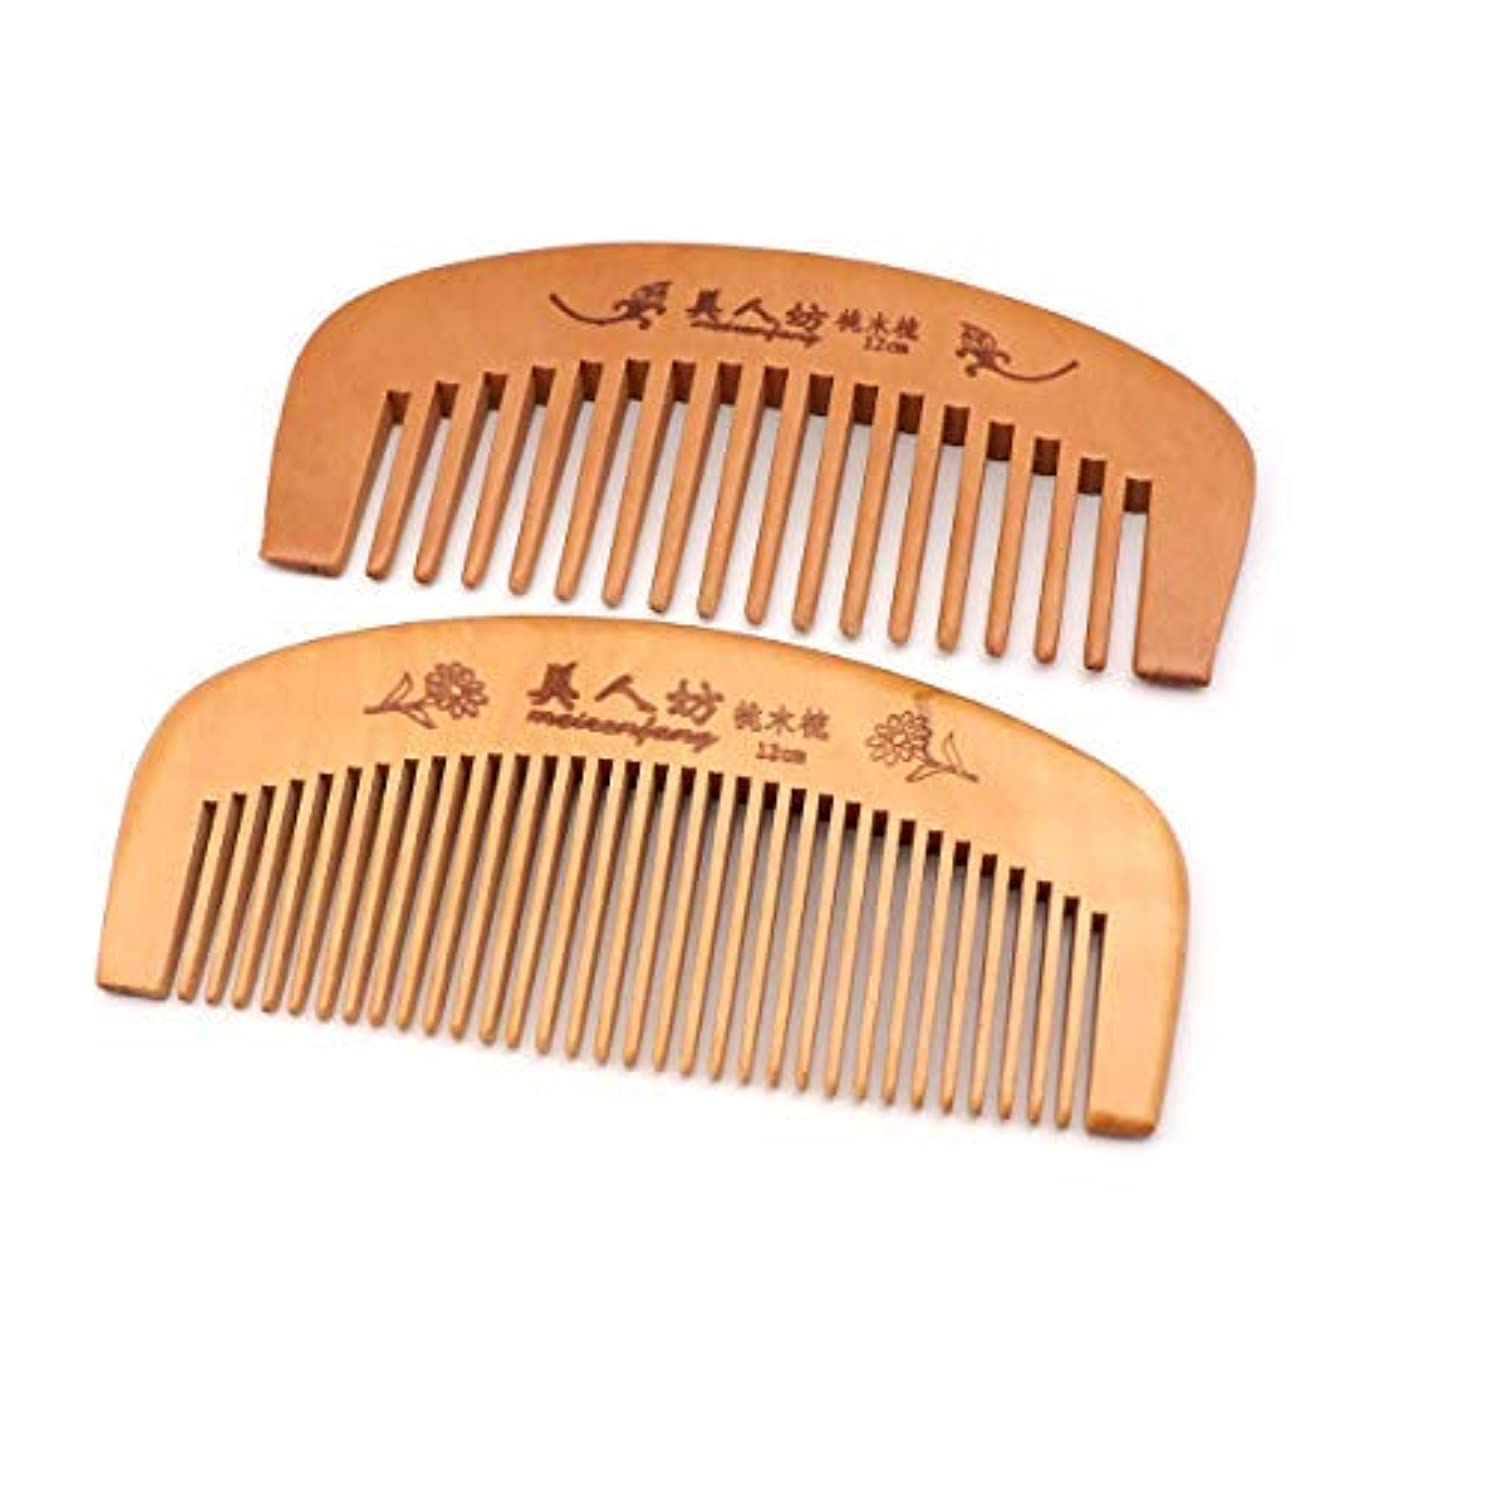 騒々しい増幅器ホースHandmade Wooden Hair Comb for Curly Wide Toothed Wooden Comb, anti-Static and Barrier-free Hand Brushing Beard...